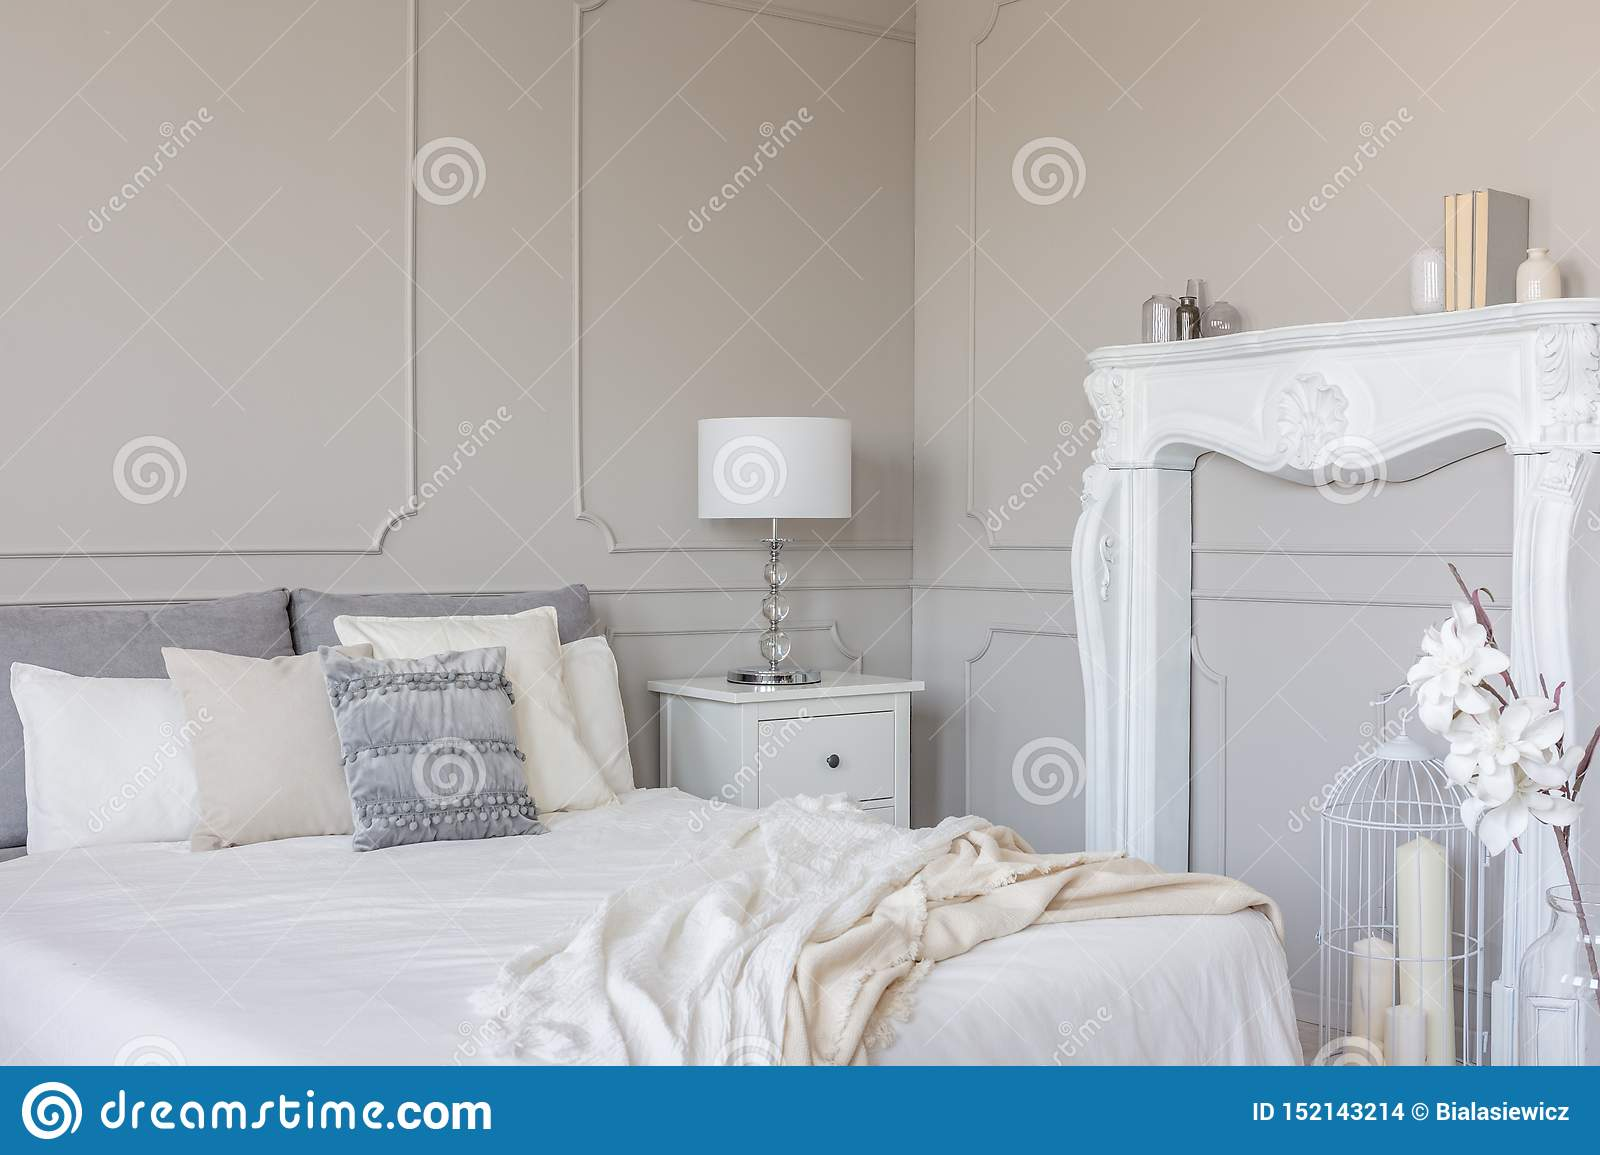 Picture of: White Wooden Fireplace Portal In Beautiful Bedroom Interior With White Sheets On King Size Bed Stock Photo Image Of Duvet Estate 152143214